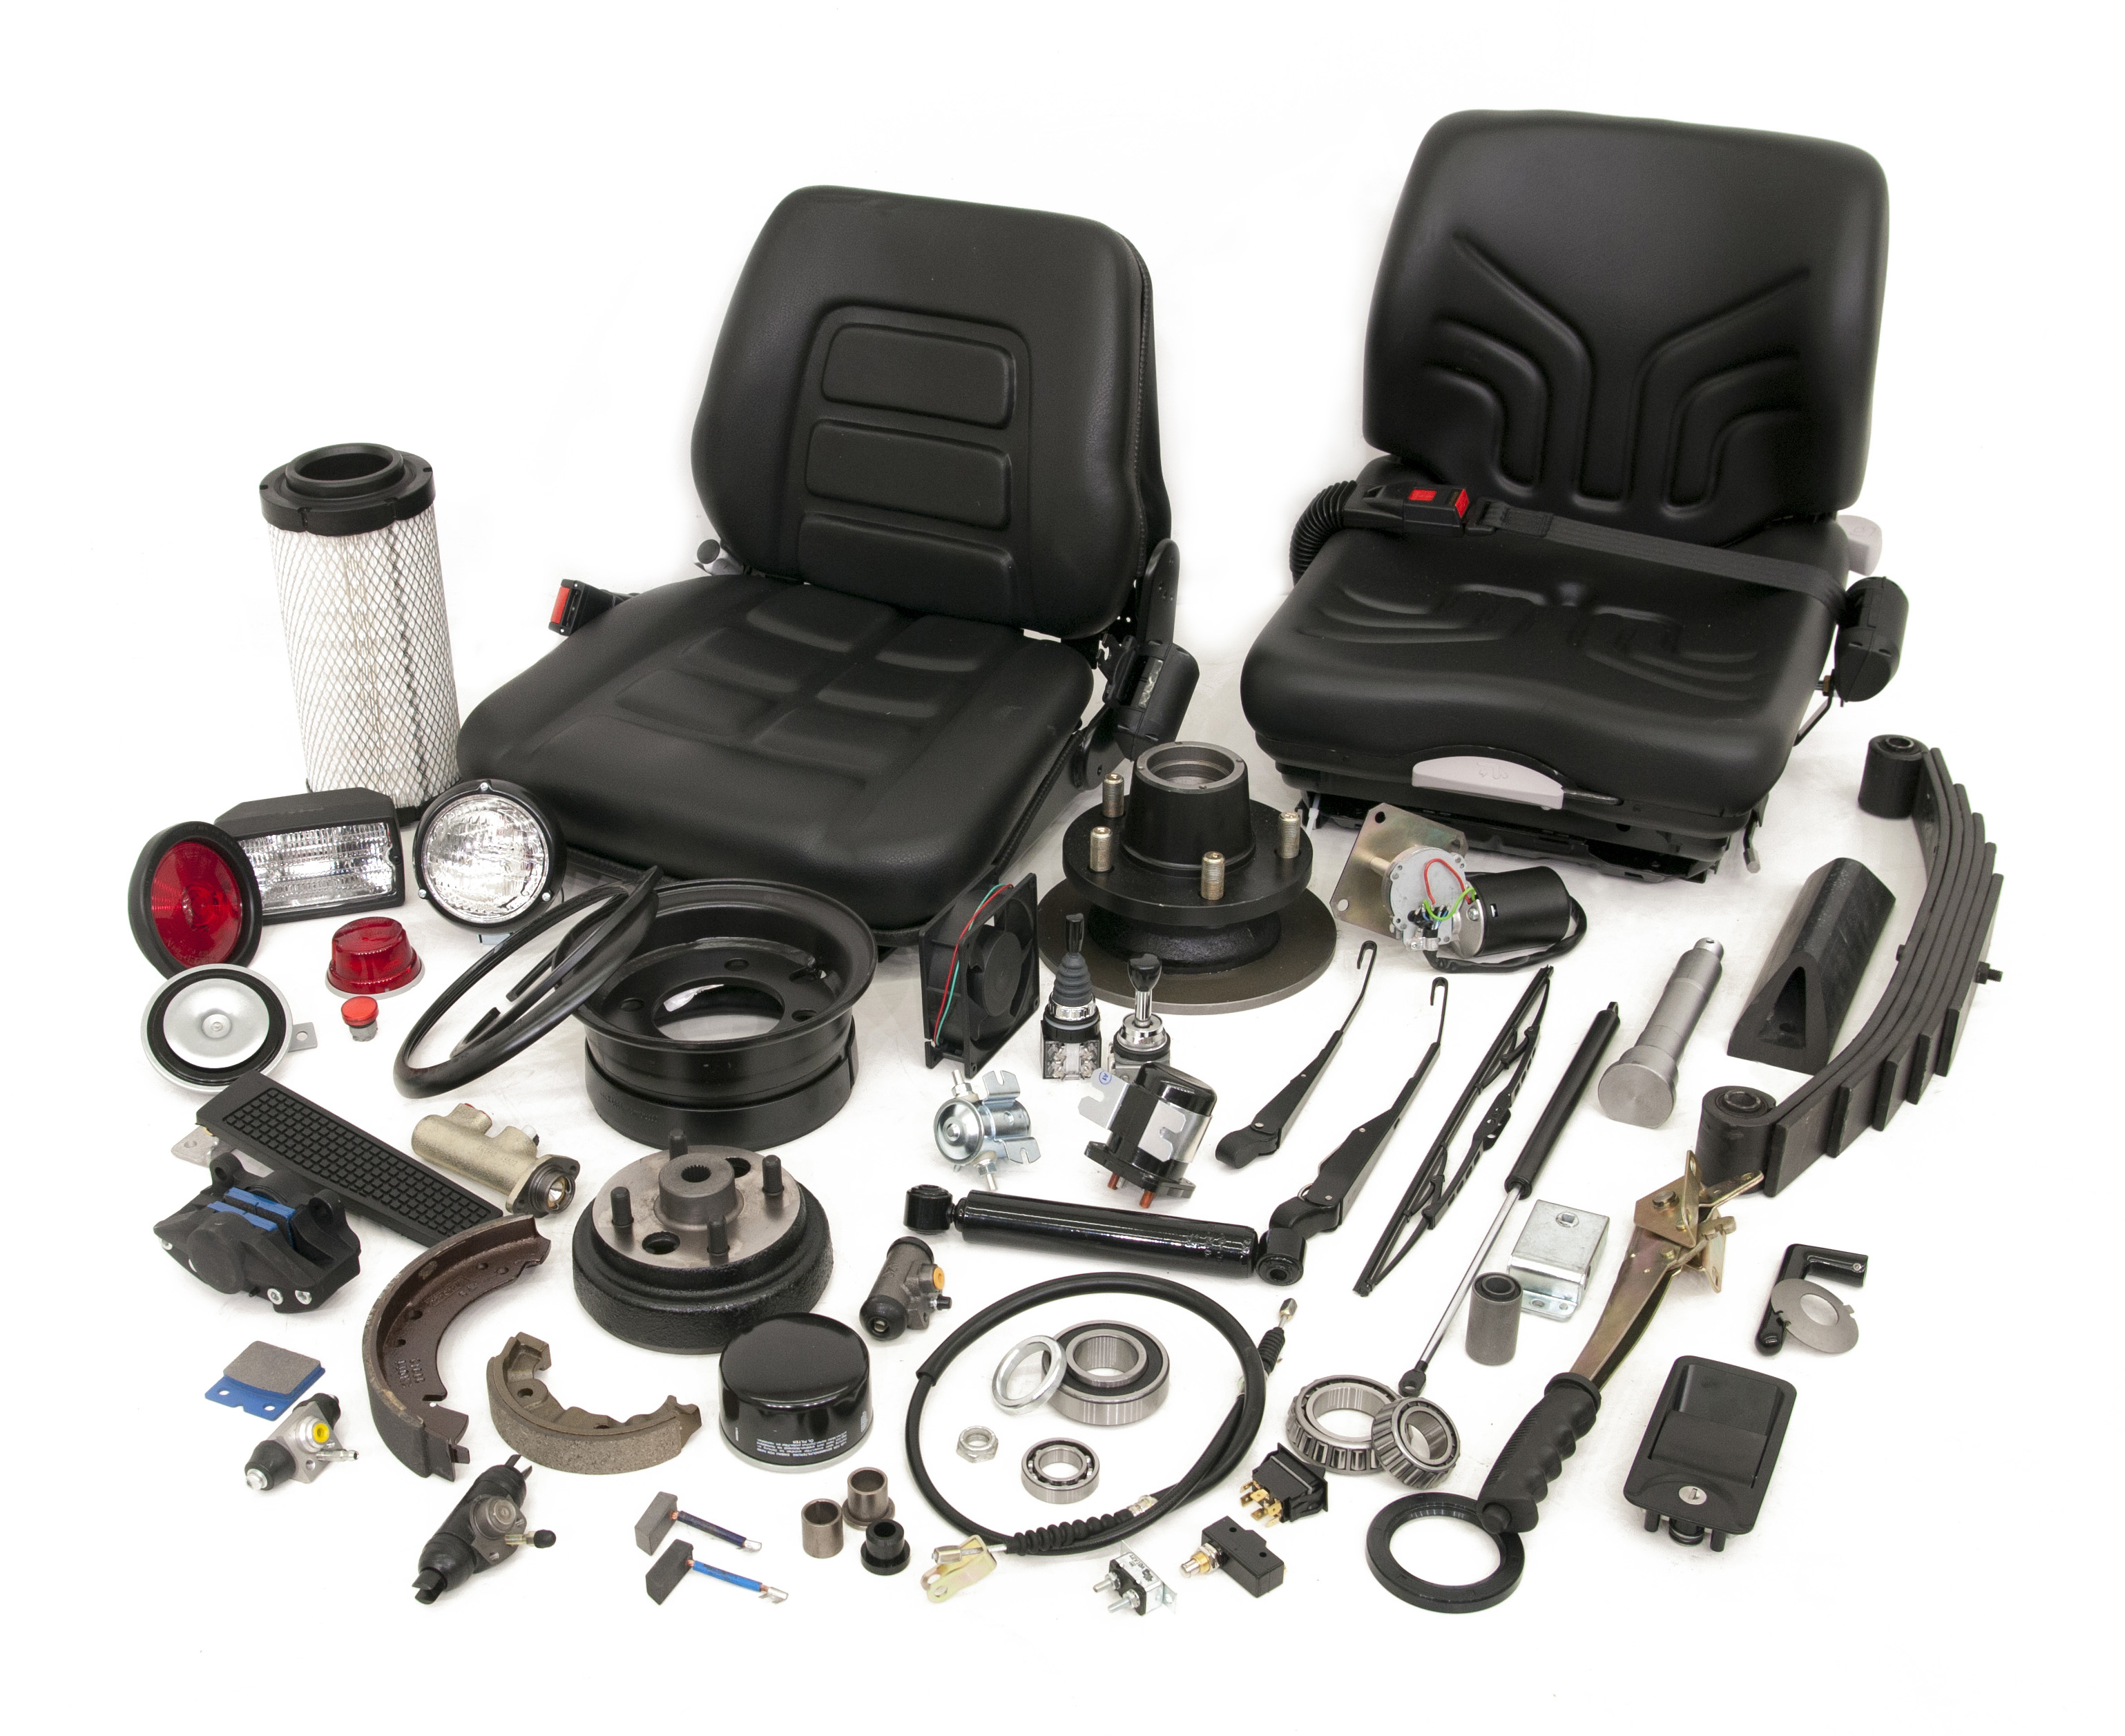 Airport Suppliers - Press Release - TVH - Parts and Accessories for